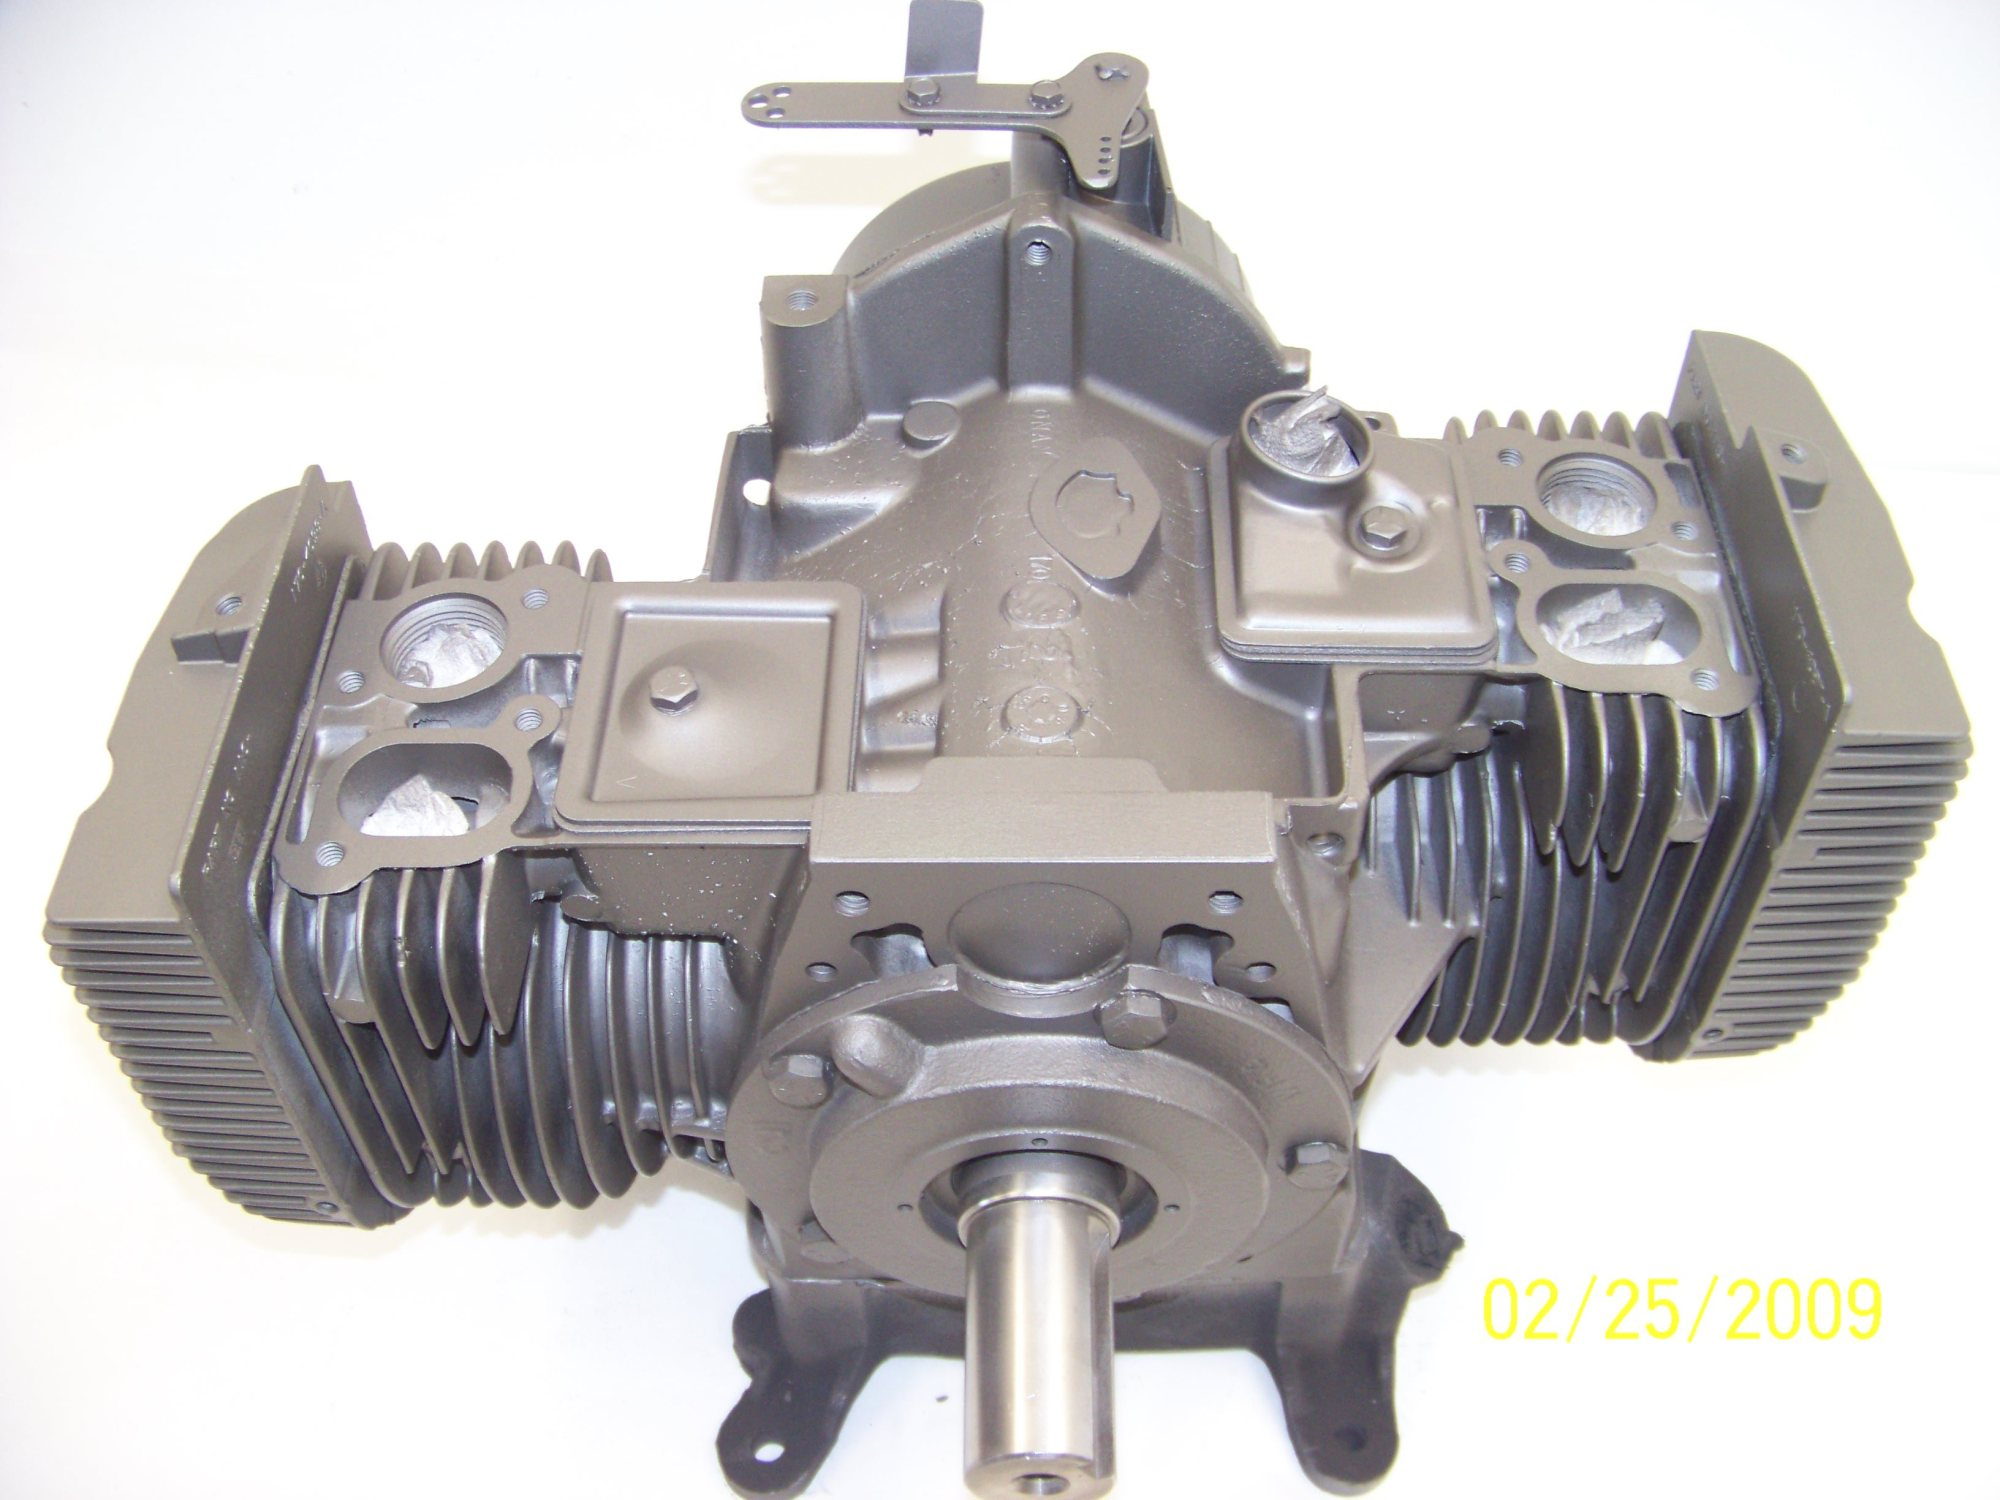 hight resolution of onan p218 18hp engine rebuild remanufactured core required onan 18 hp engine manual onan 18 hp engine diagram